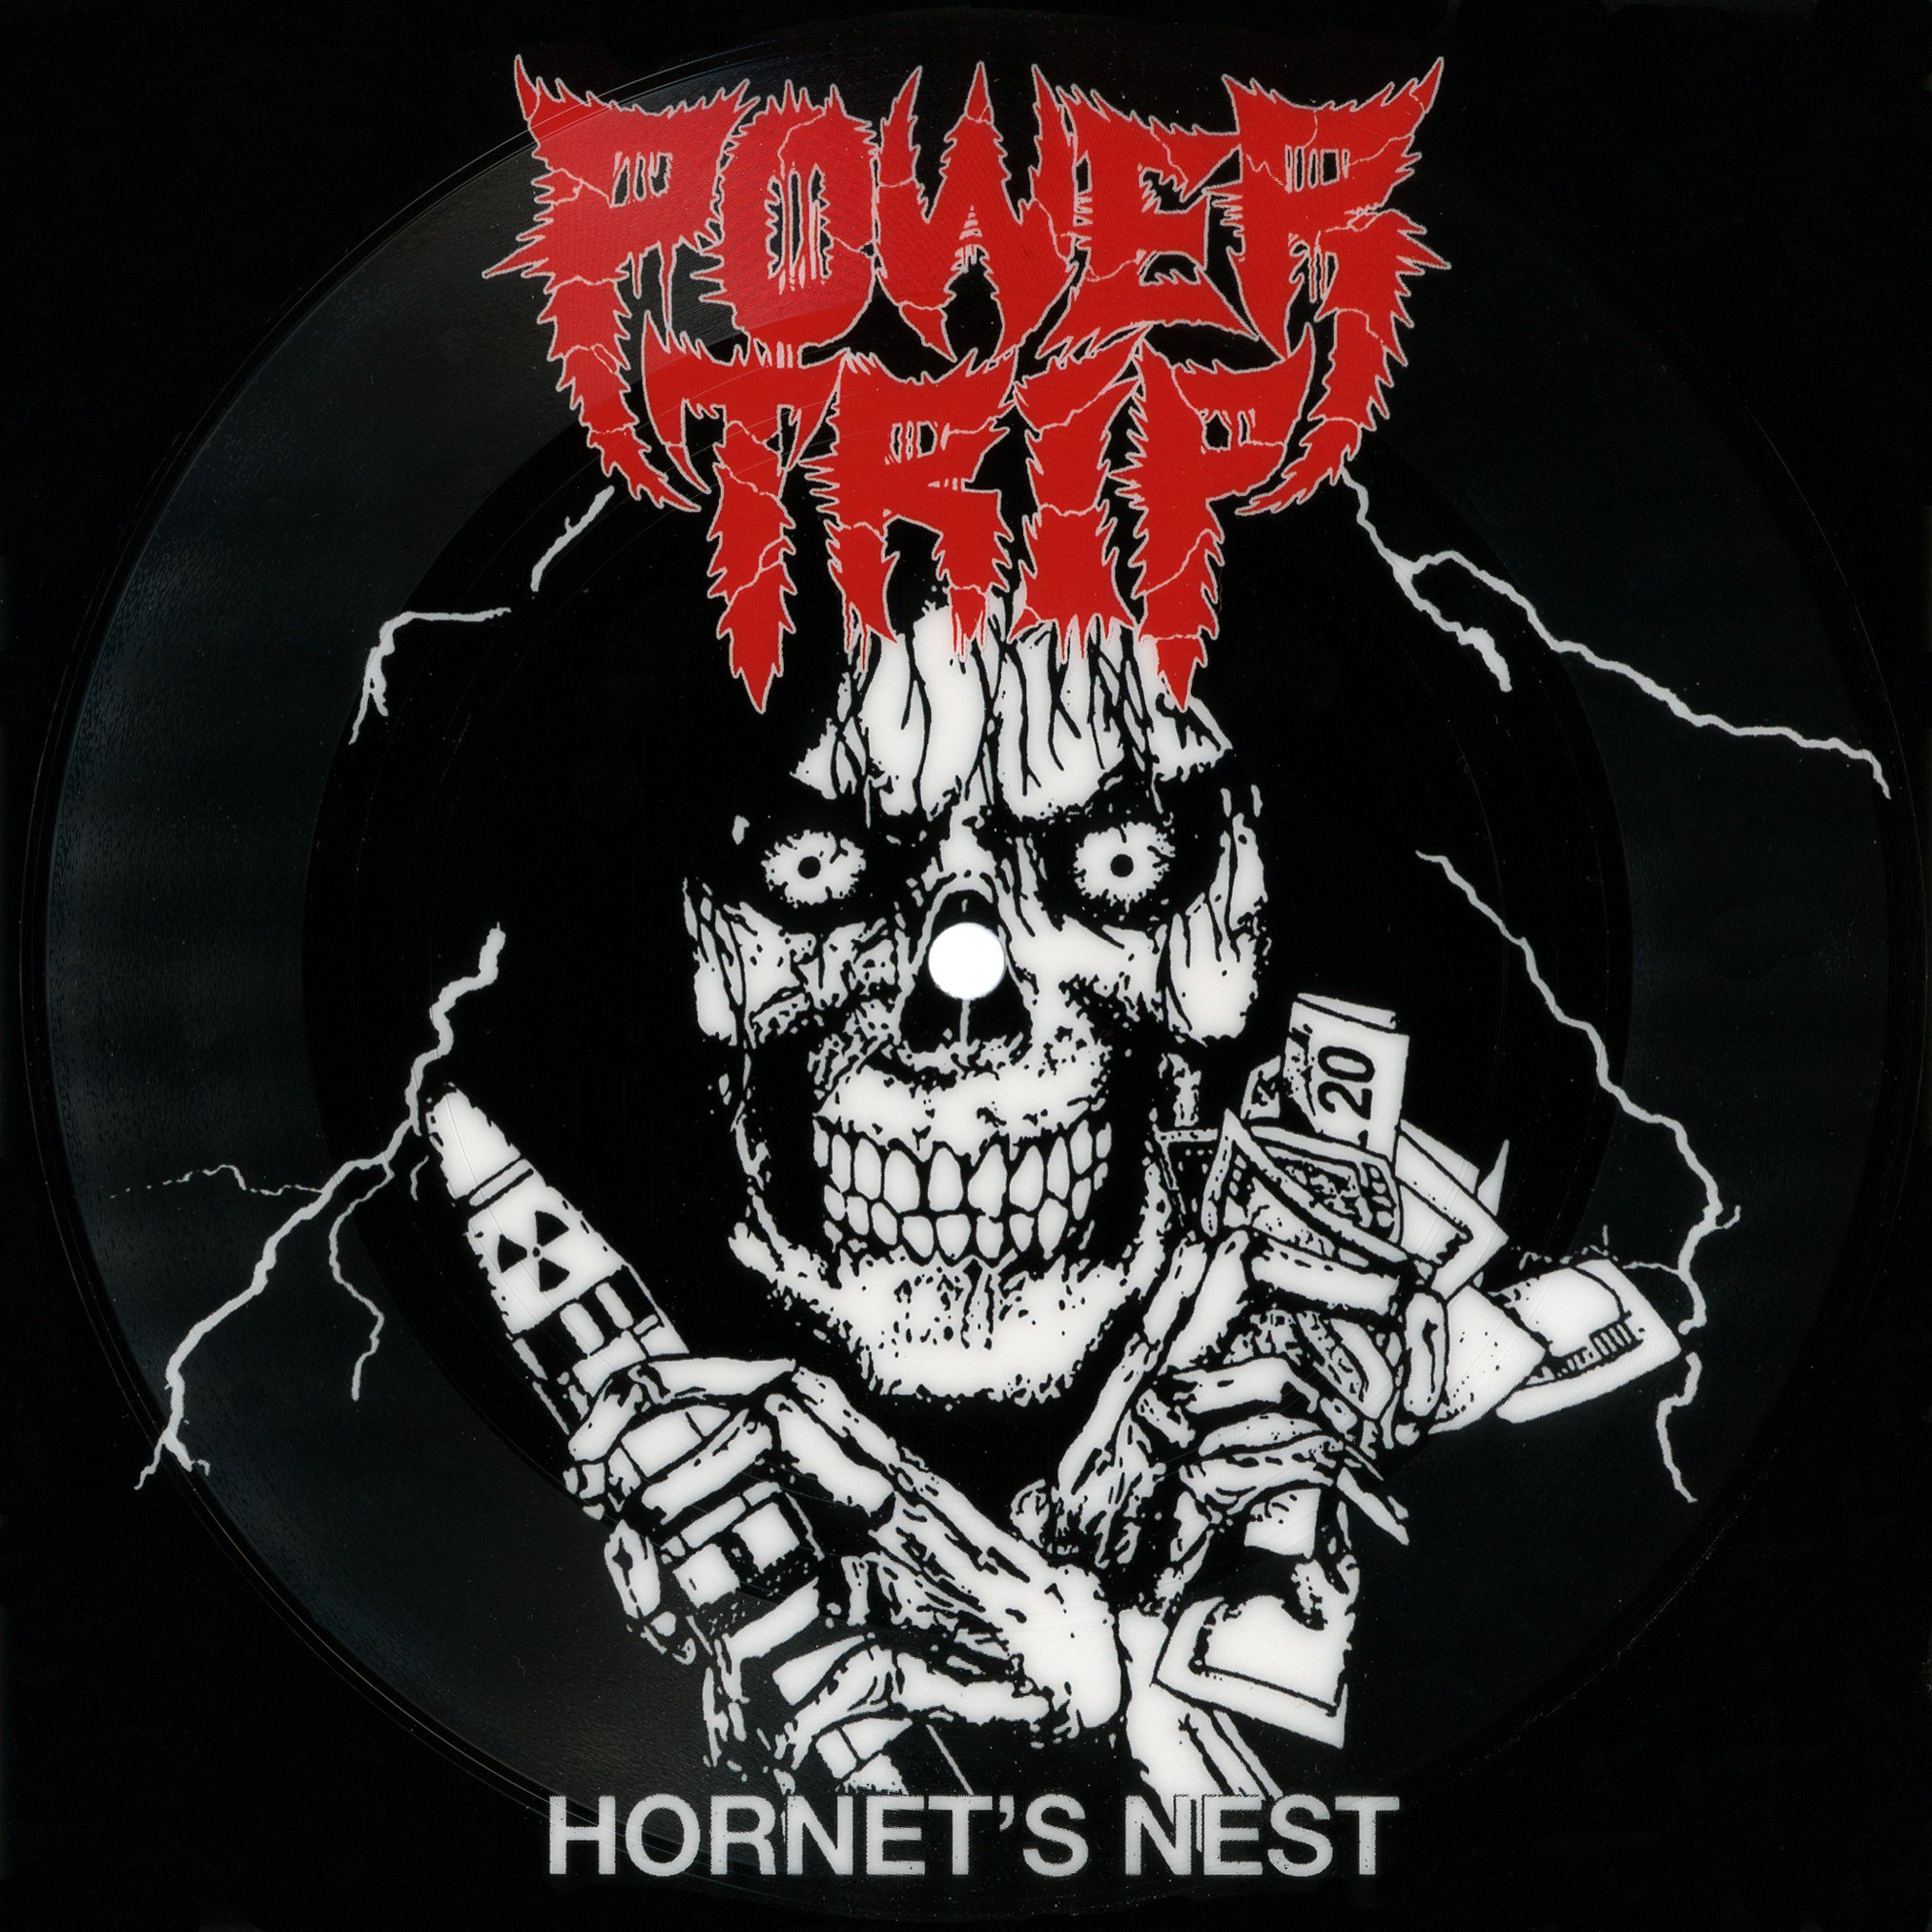 -sold out- Power Trip 'Hornet's nest' flexi picture 7